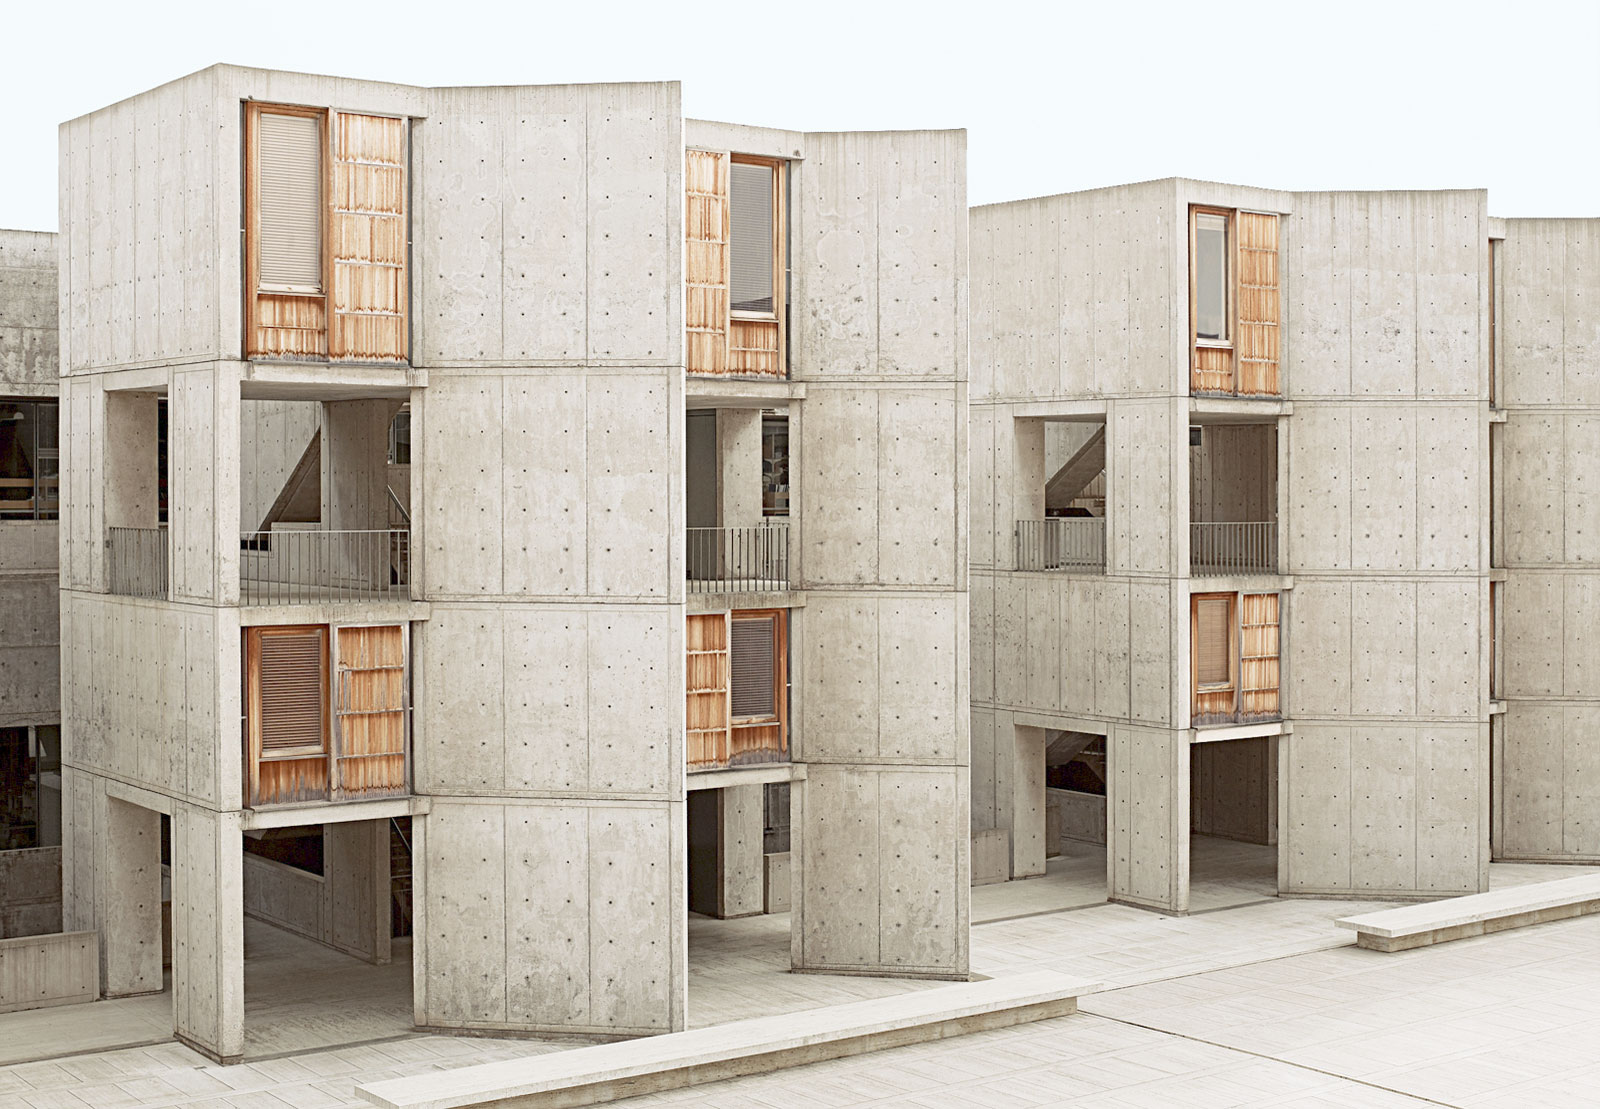 Salk Institute by Louis Kahn | Concrete Architecture in California